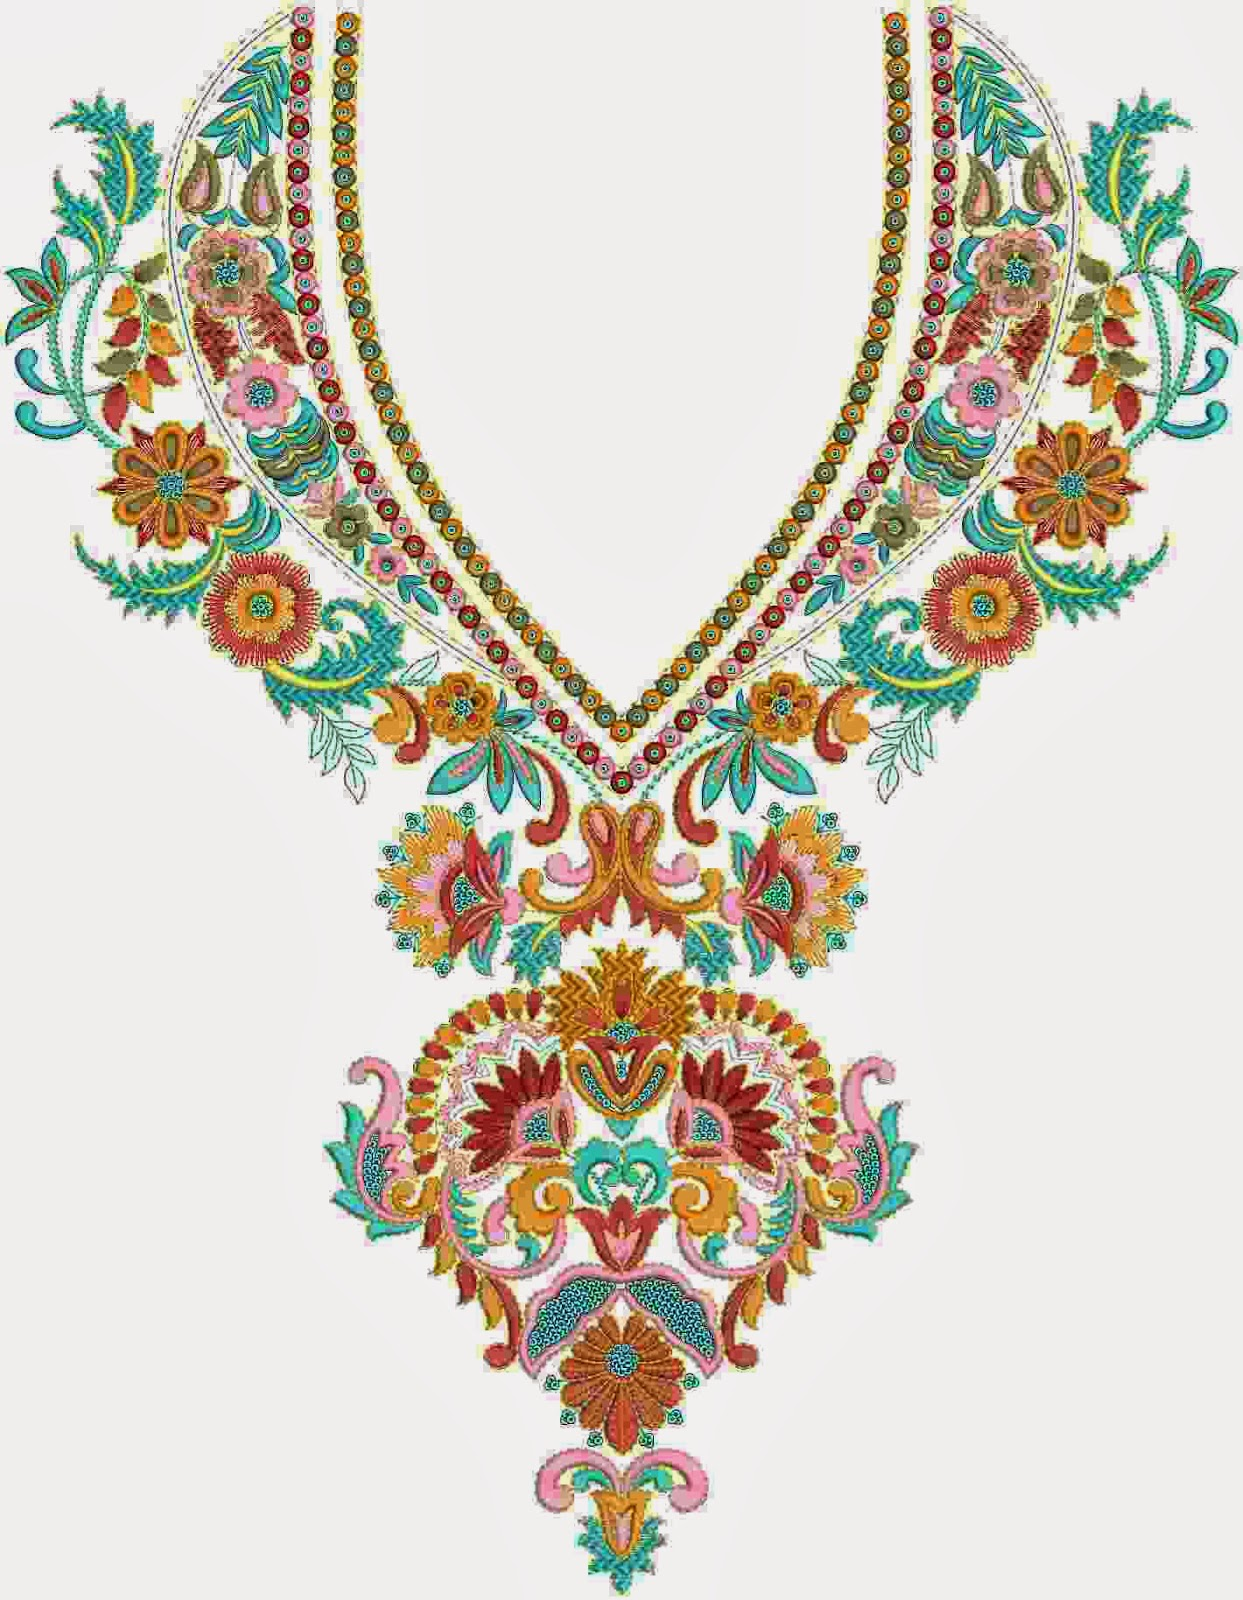 Embdesigntube: Neck Yoke Gala Embroidery Designs Of Kameez Dresses